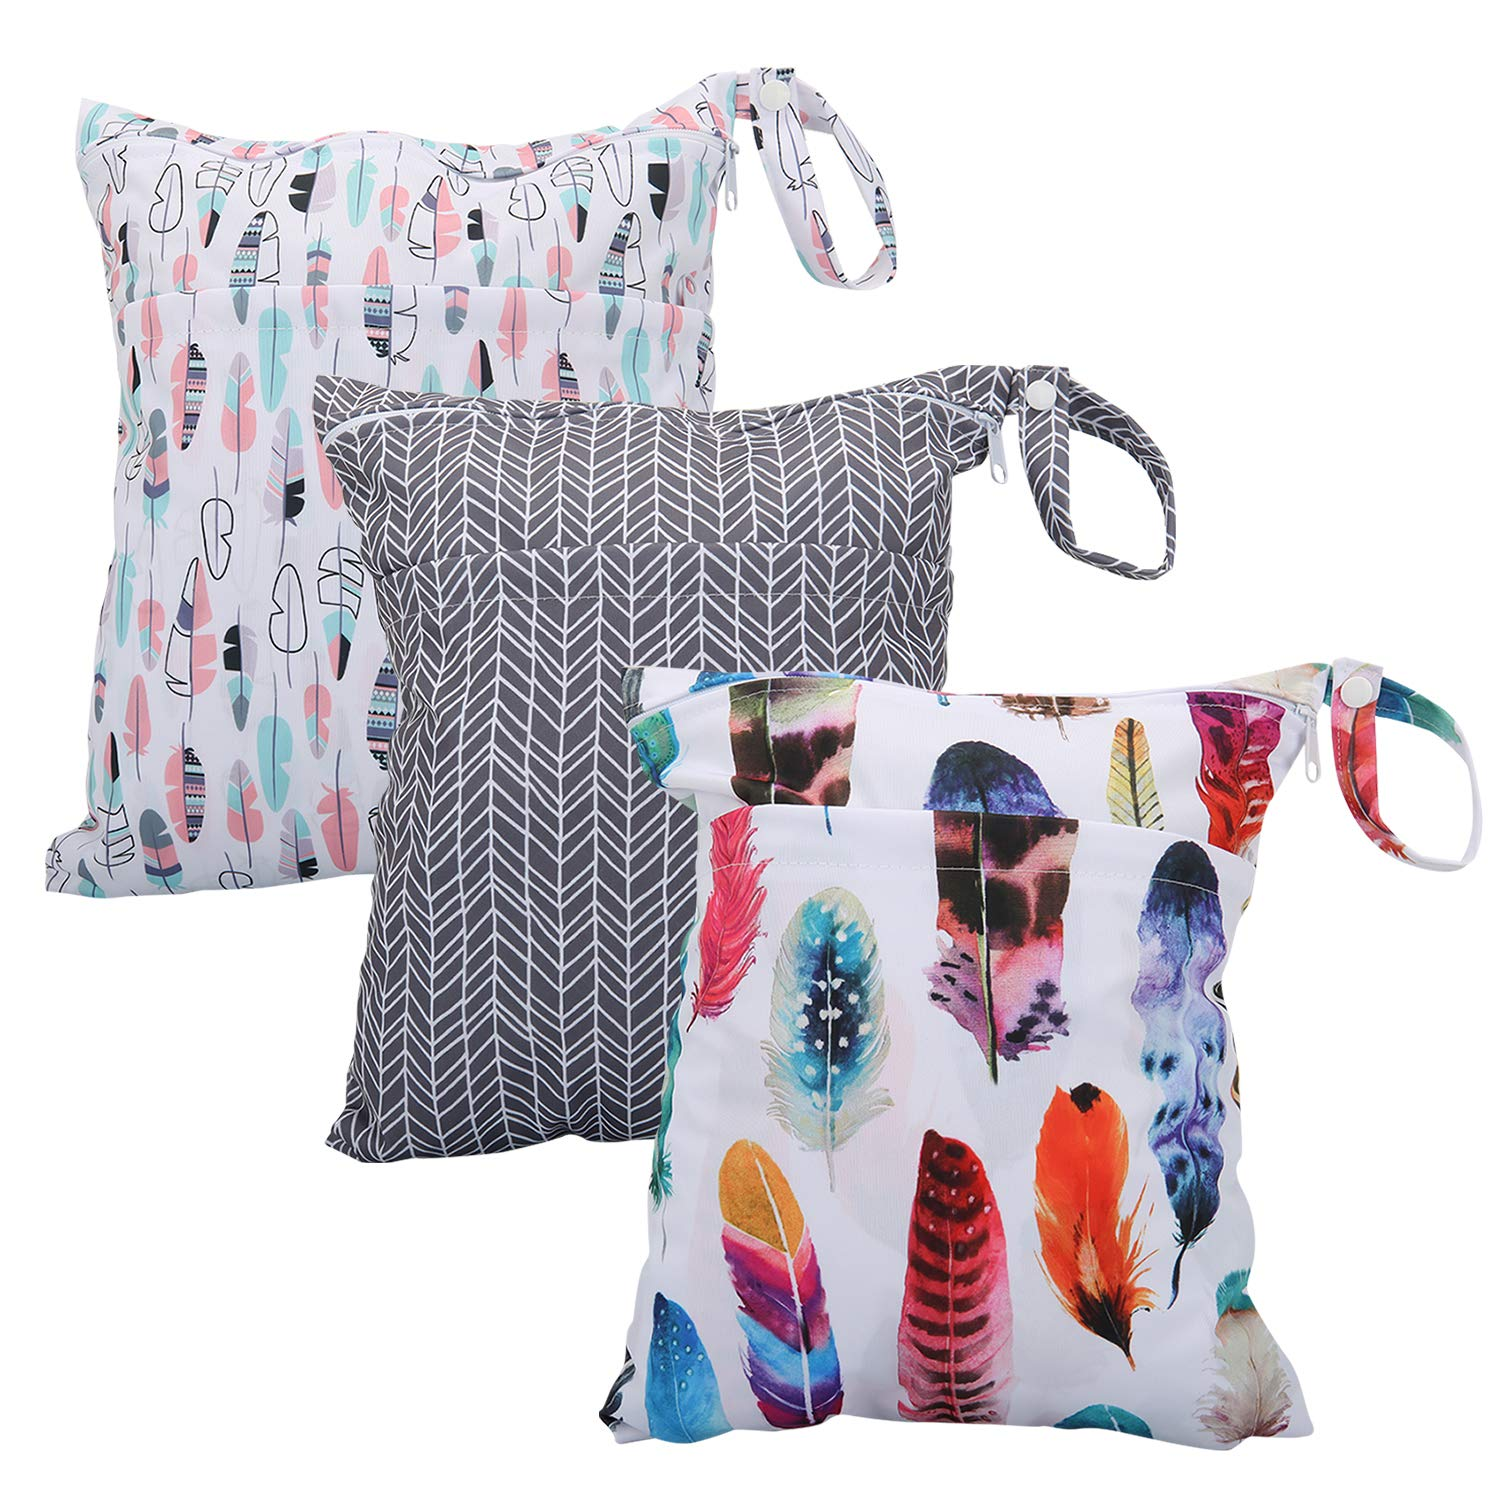 Wet Bag for Cloth Diapers Waterproof Reusable Bags with Two Zippered Pockets Ins Feathers Wet Dry Bag Travel Beach Pool Yoga Gym Bag for Pump Swimsuits Wet Clothes 3pcs